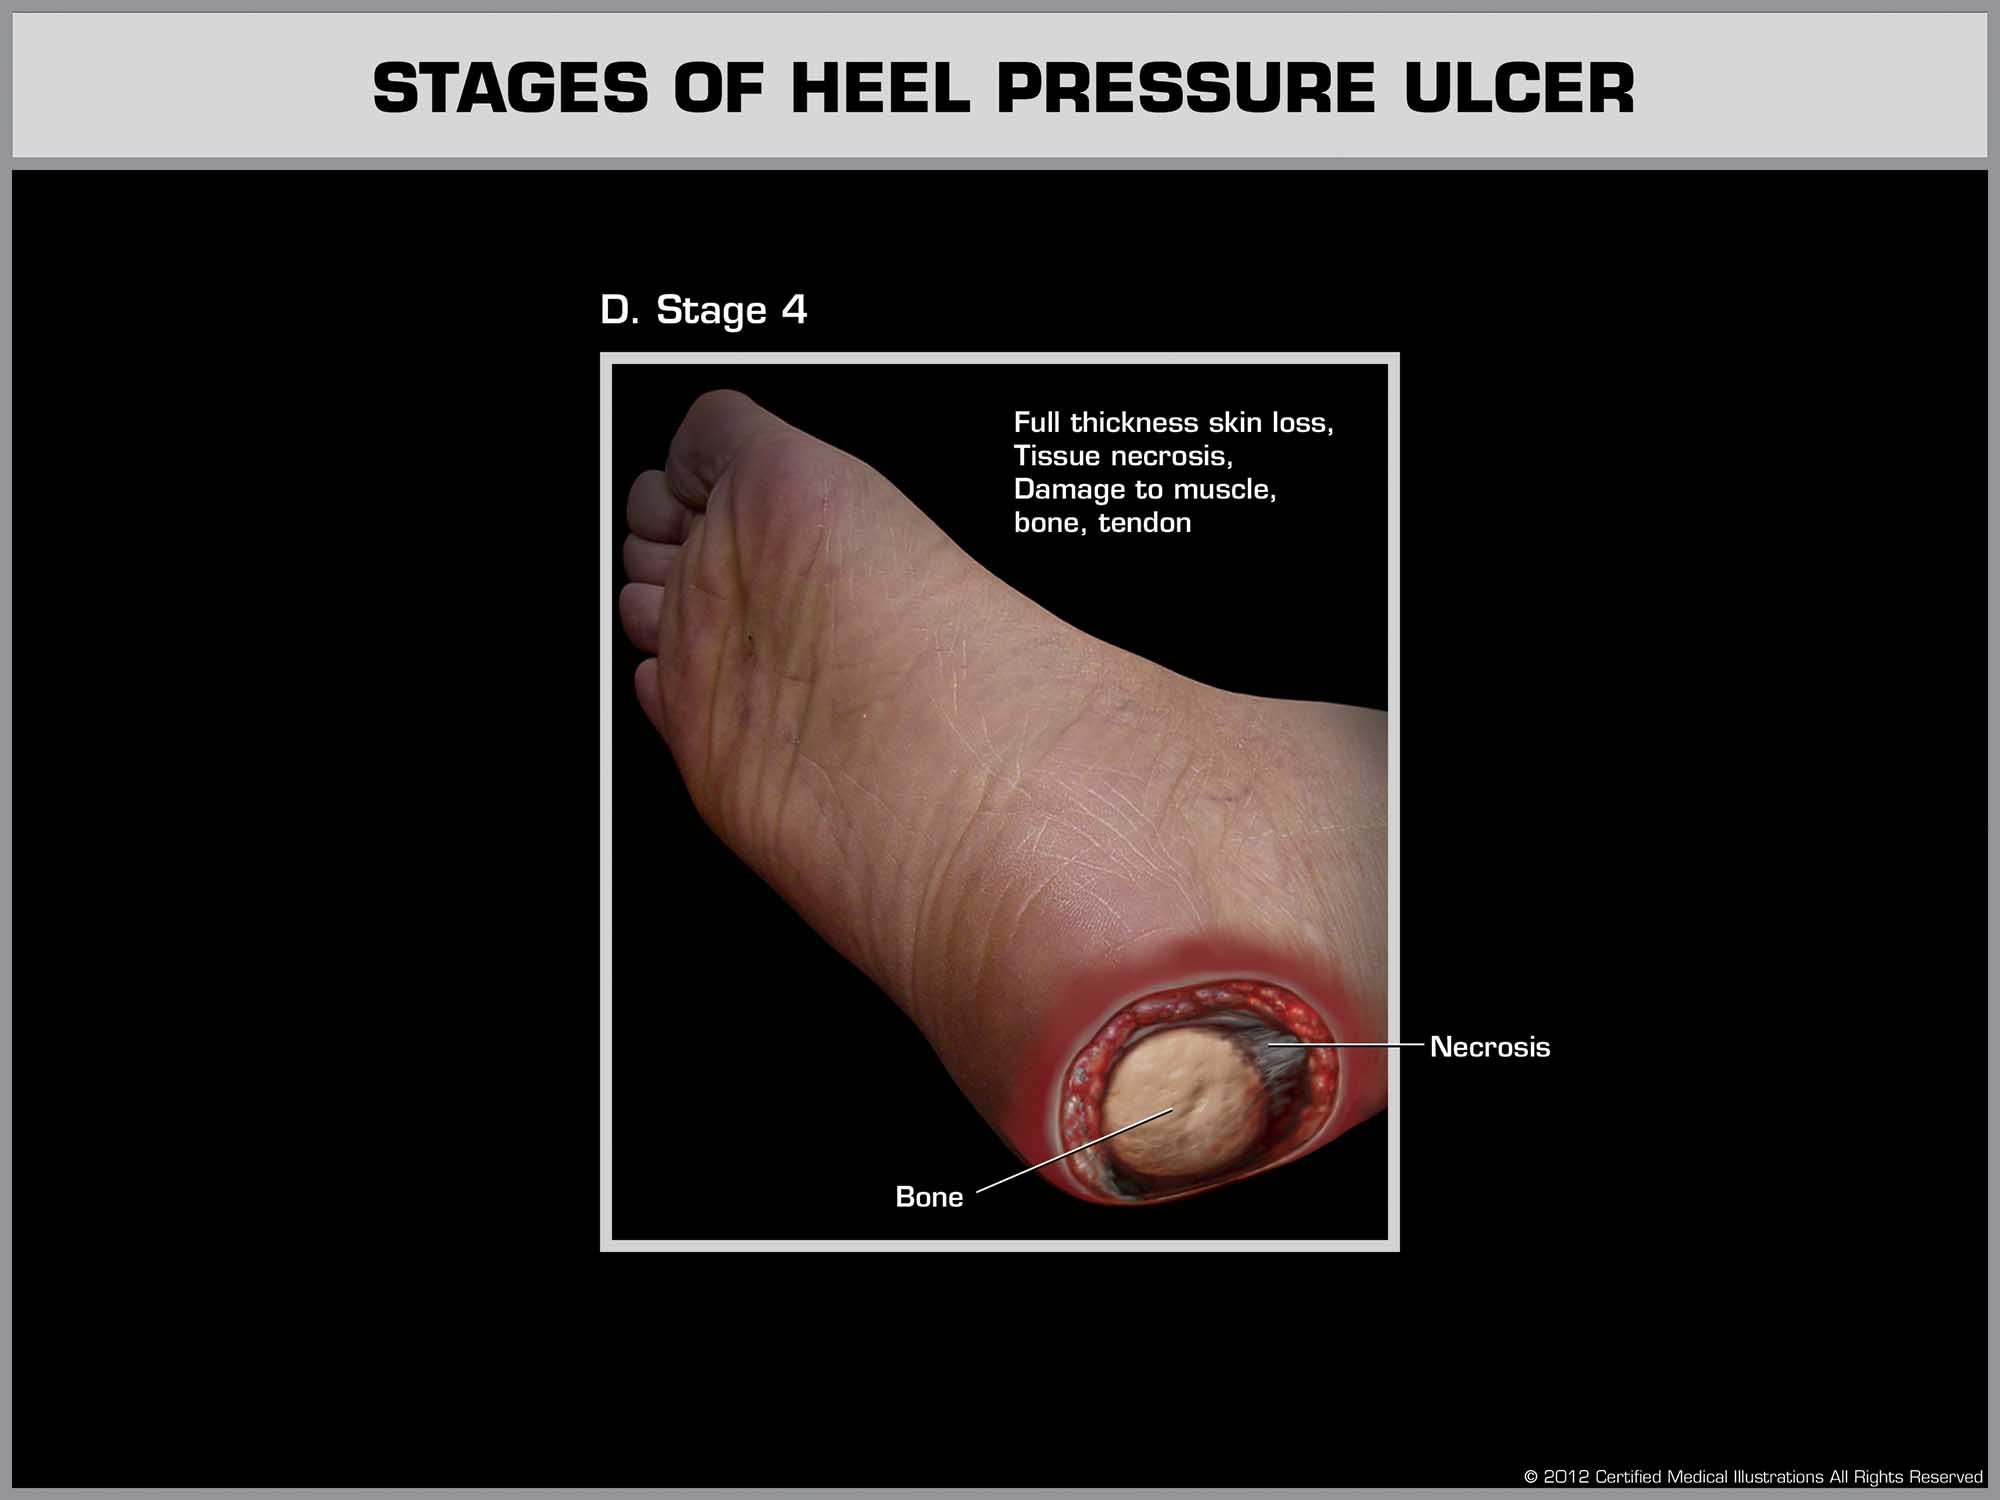 Development of a Heal Ulcer - Stage 4 - Law Office of Andrew A. Ballerini